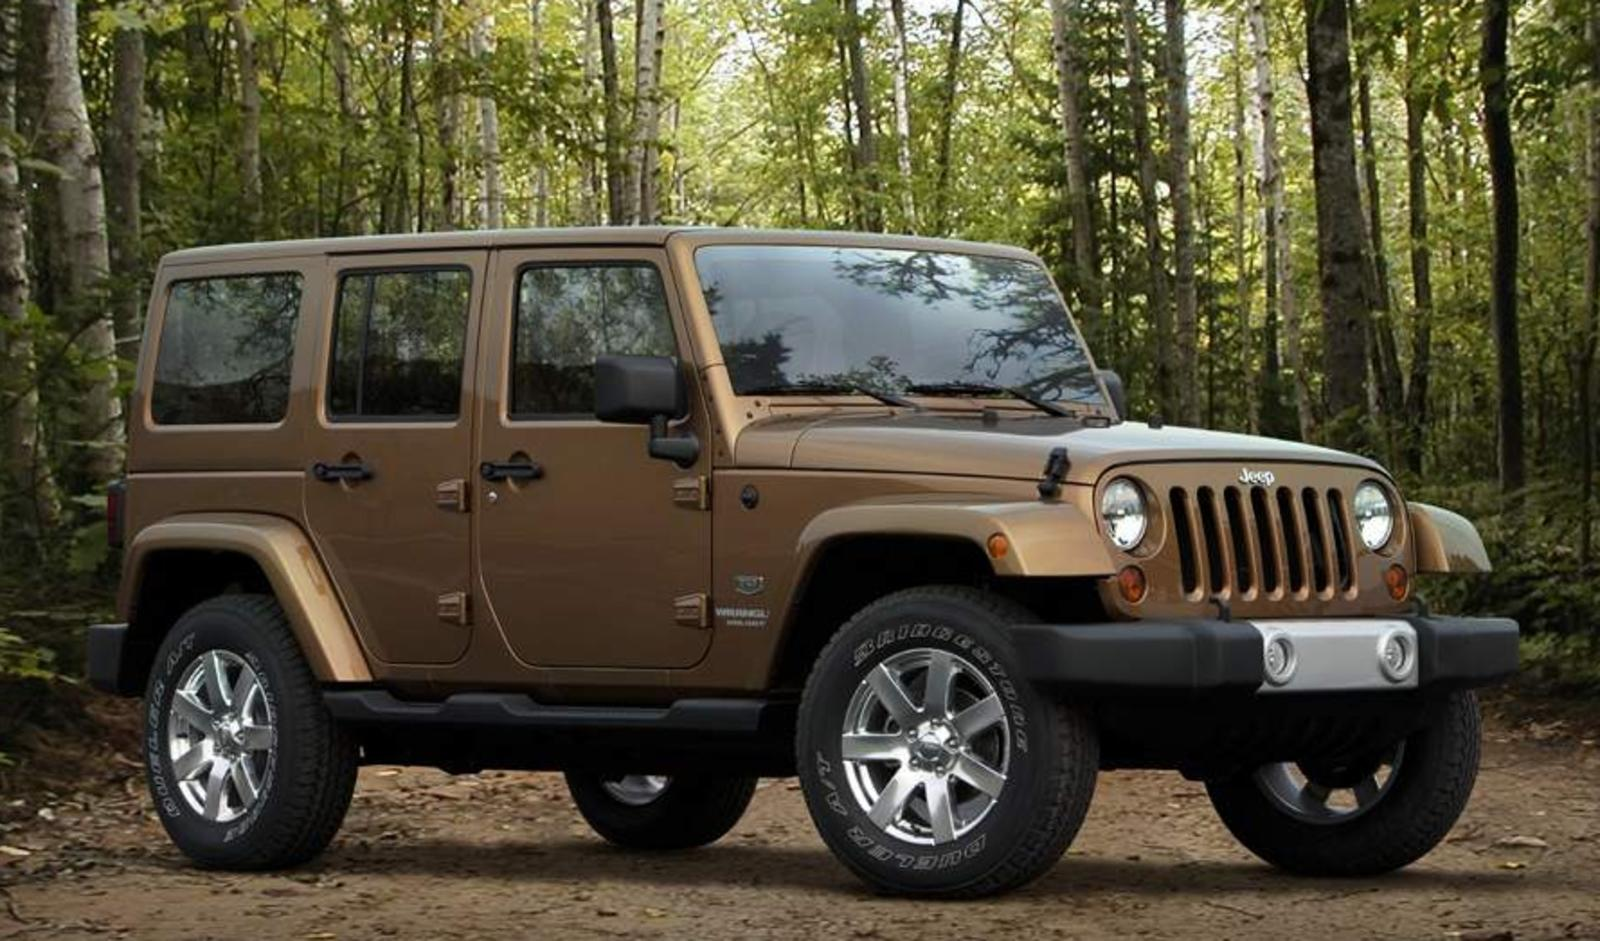 2011 Jeep Wrangler 70th Anniversary Edition Review - Top Speed